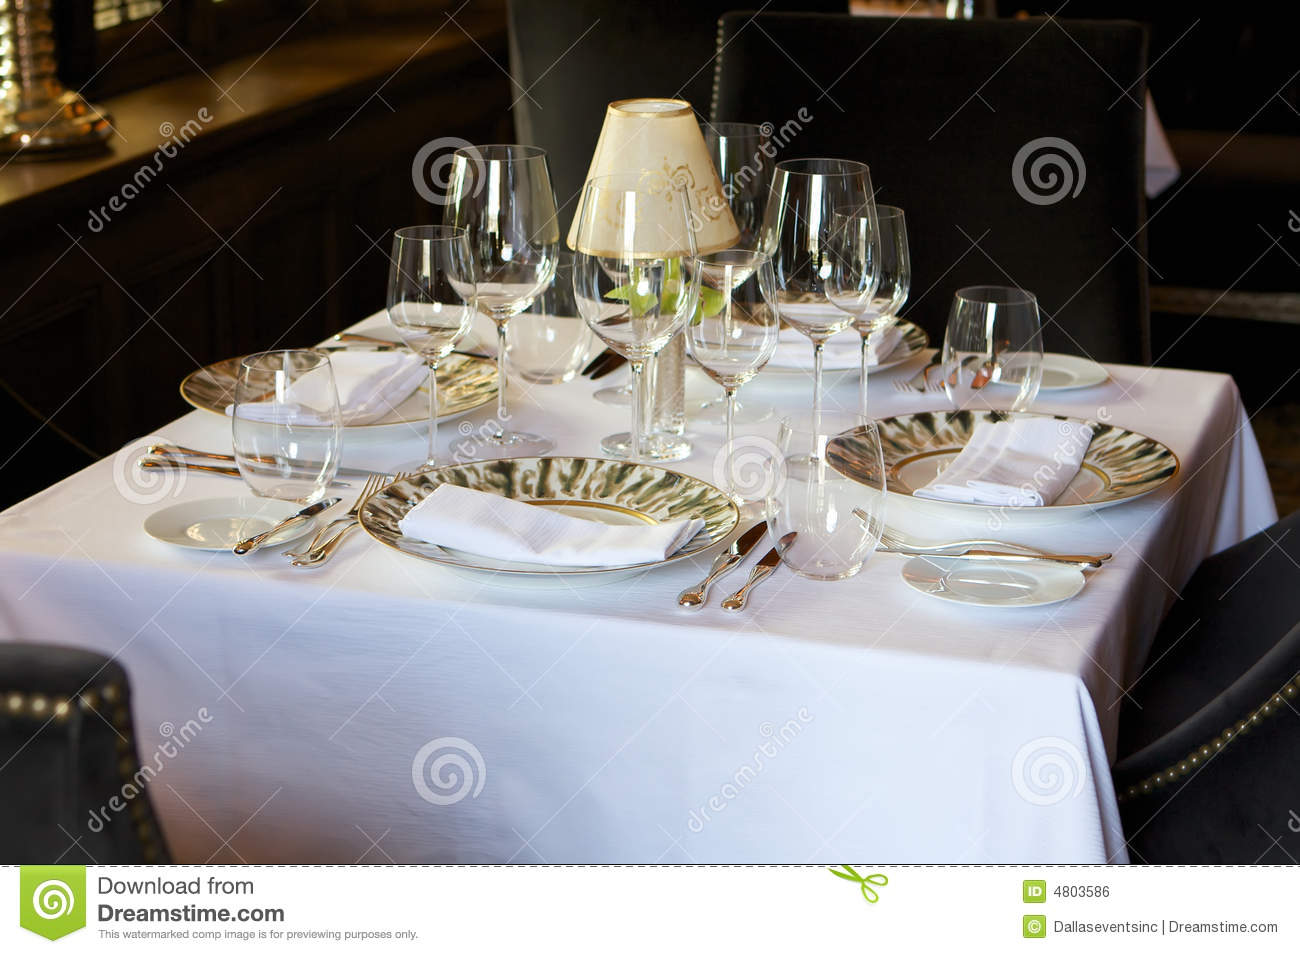 Formal European Cafe Table Setting Stock Photo Image  : formal european cafe table setting 4803586 from www.dreamstime.com size 1300 x 954 jpeg 131kB